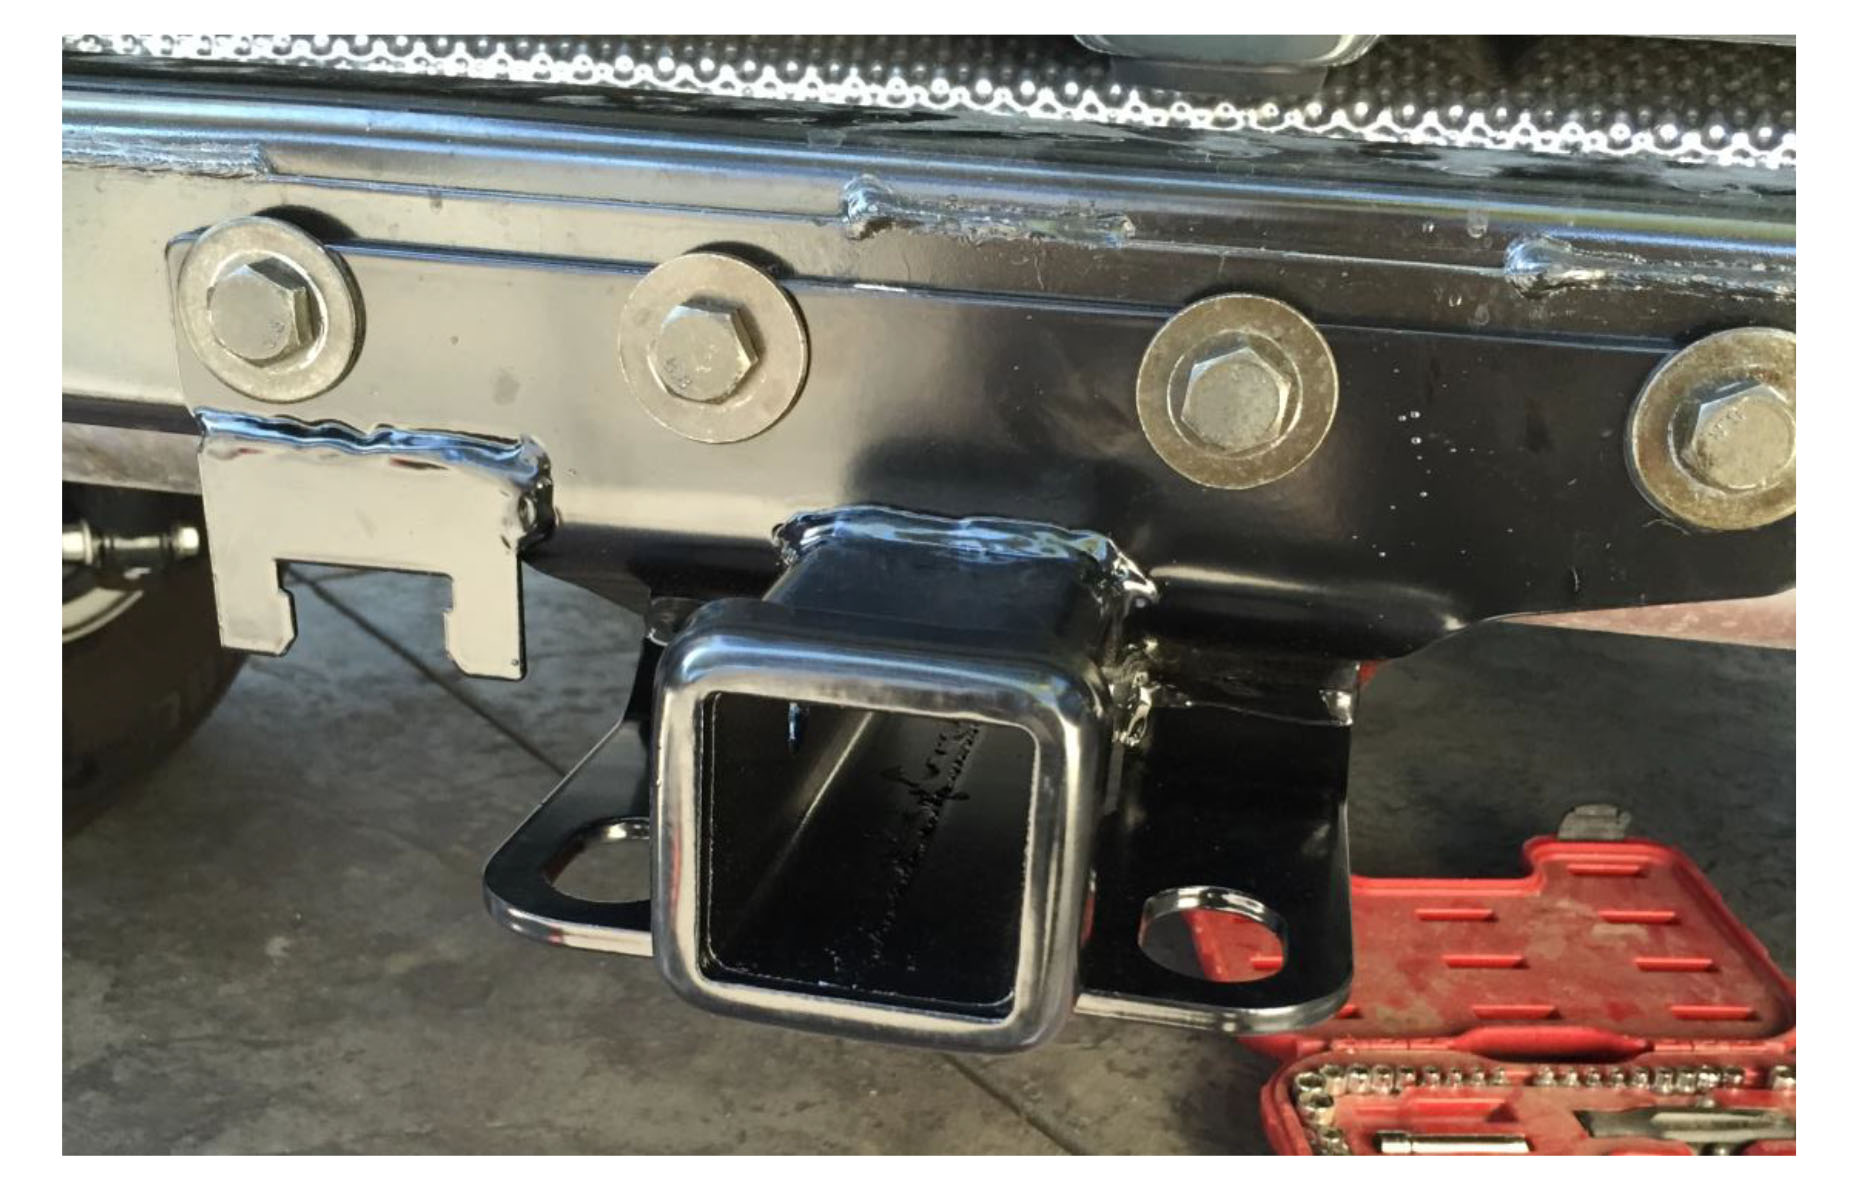 Hot To Install A Rugged Ridge Hitch Kit 2 In Ball On Your 2007 Tow Bar And Wiring Auto Transform The Bumper By Installing 6 Bolts Initially Removed